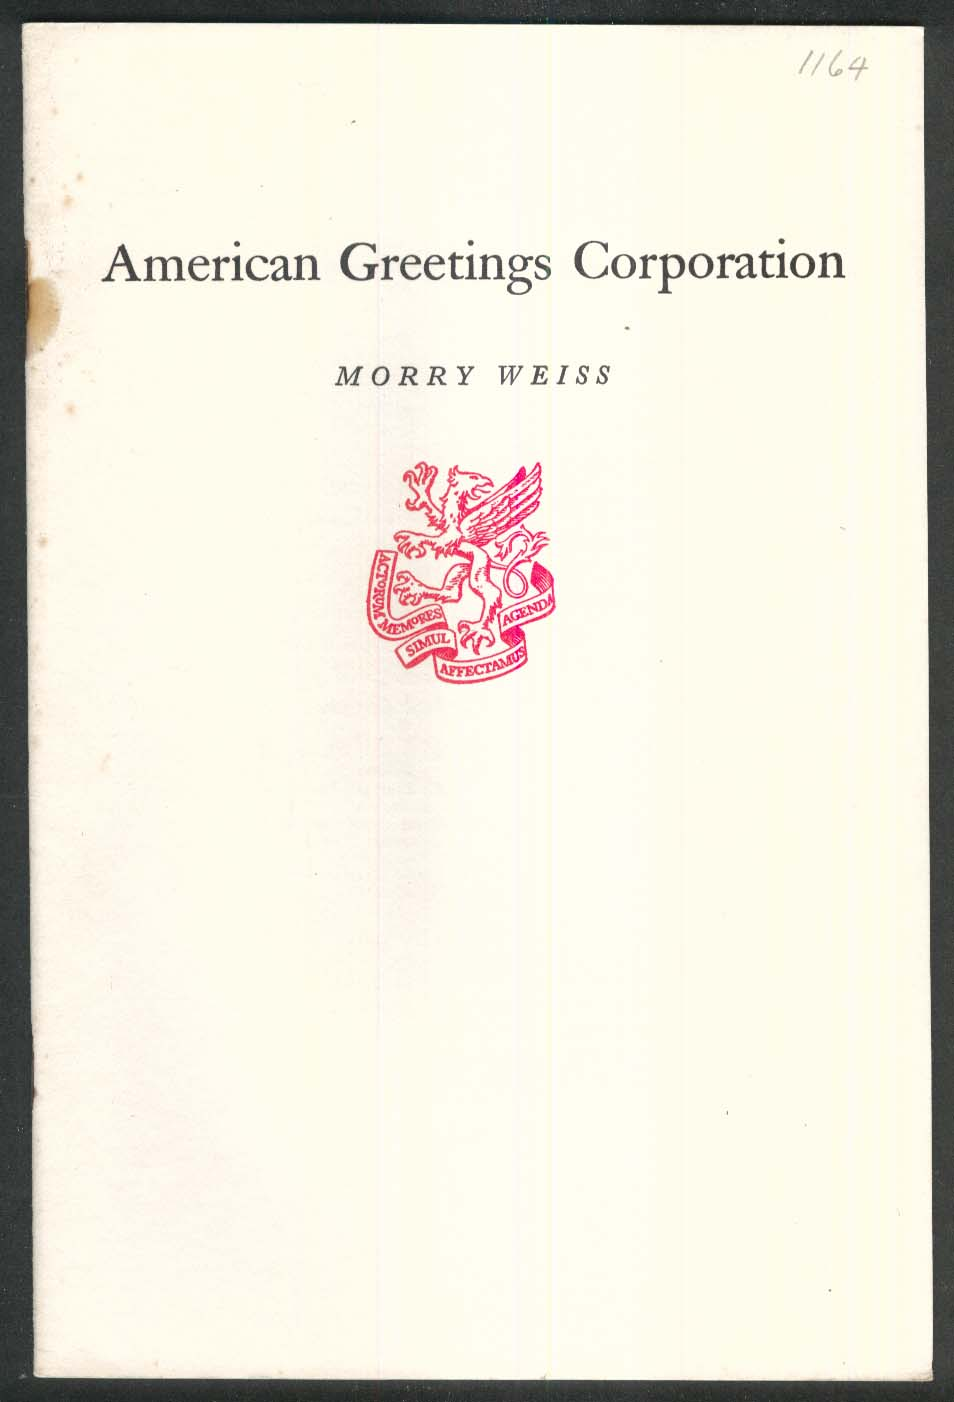 Newcomen 1164 american greetings corporation morry weiss 2 1982 newcomen 1164 american greetings corporation morry weiss 2 1982 1st printing kristyandbryce Image collections